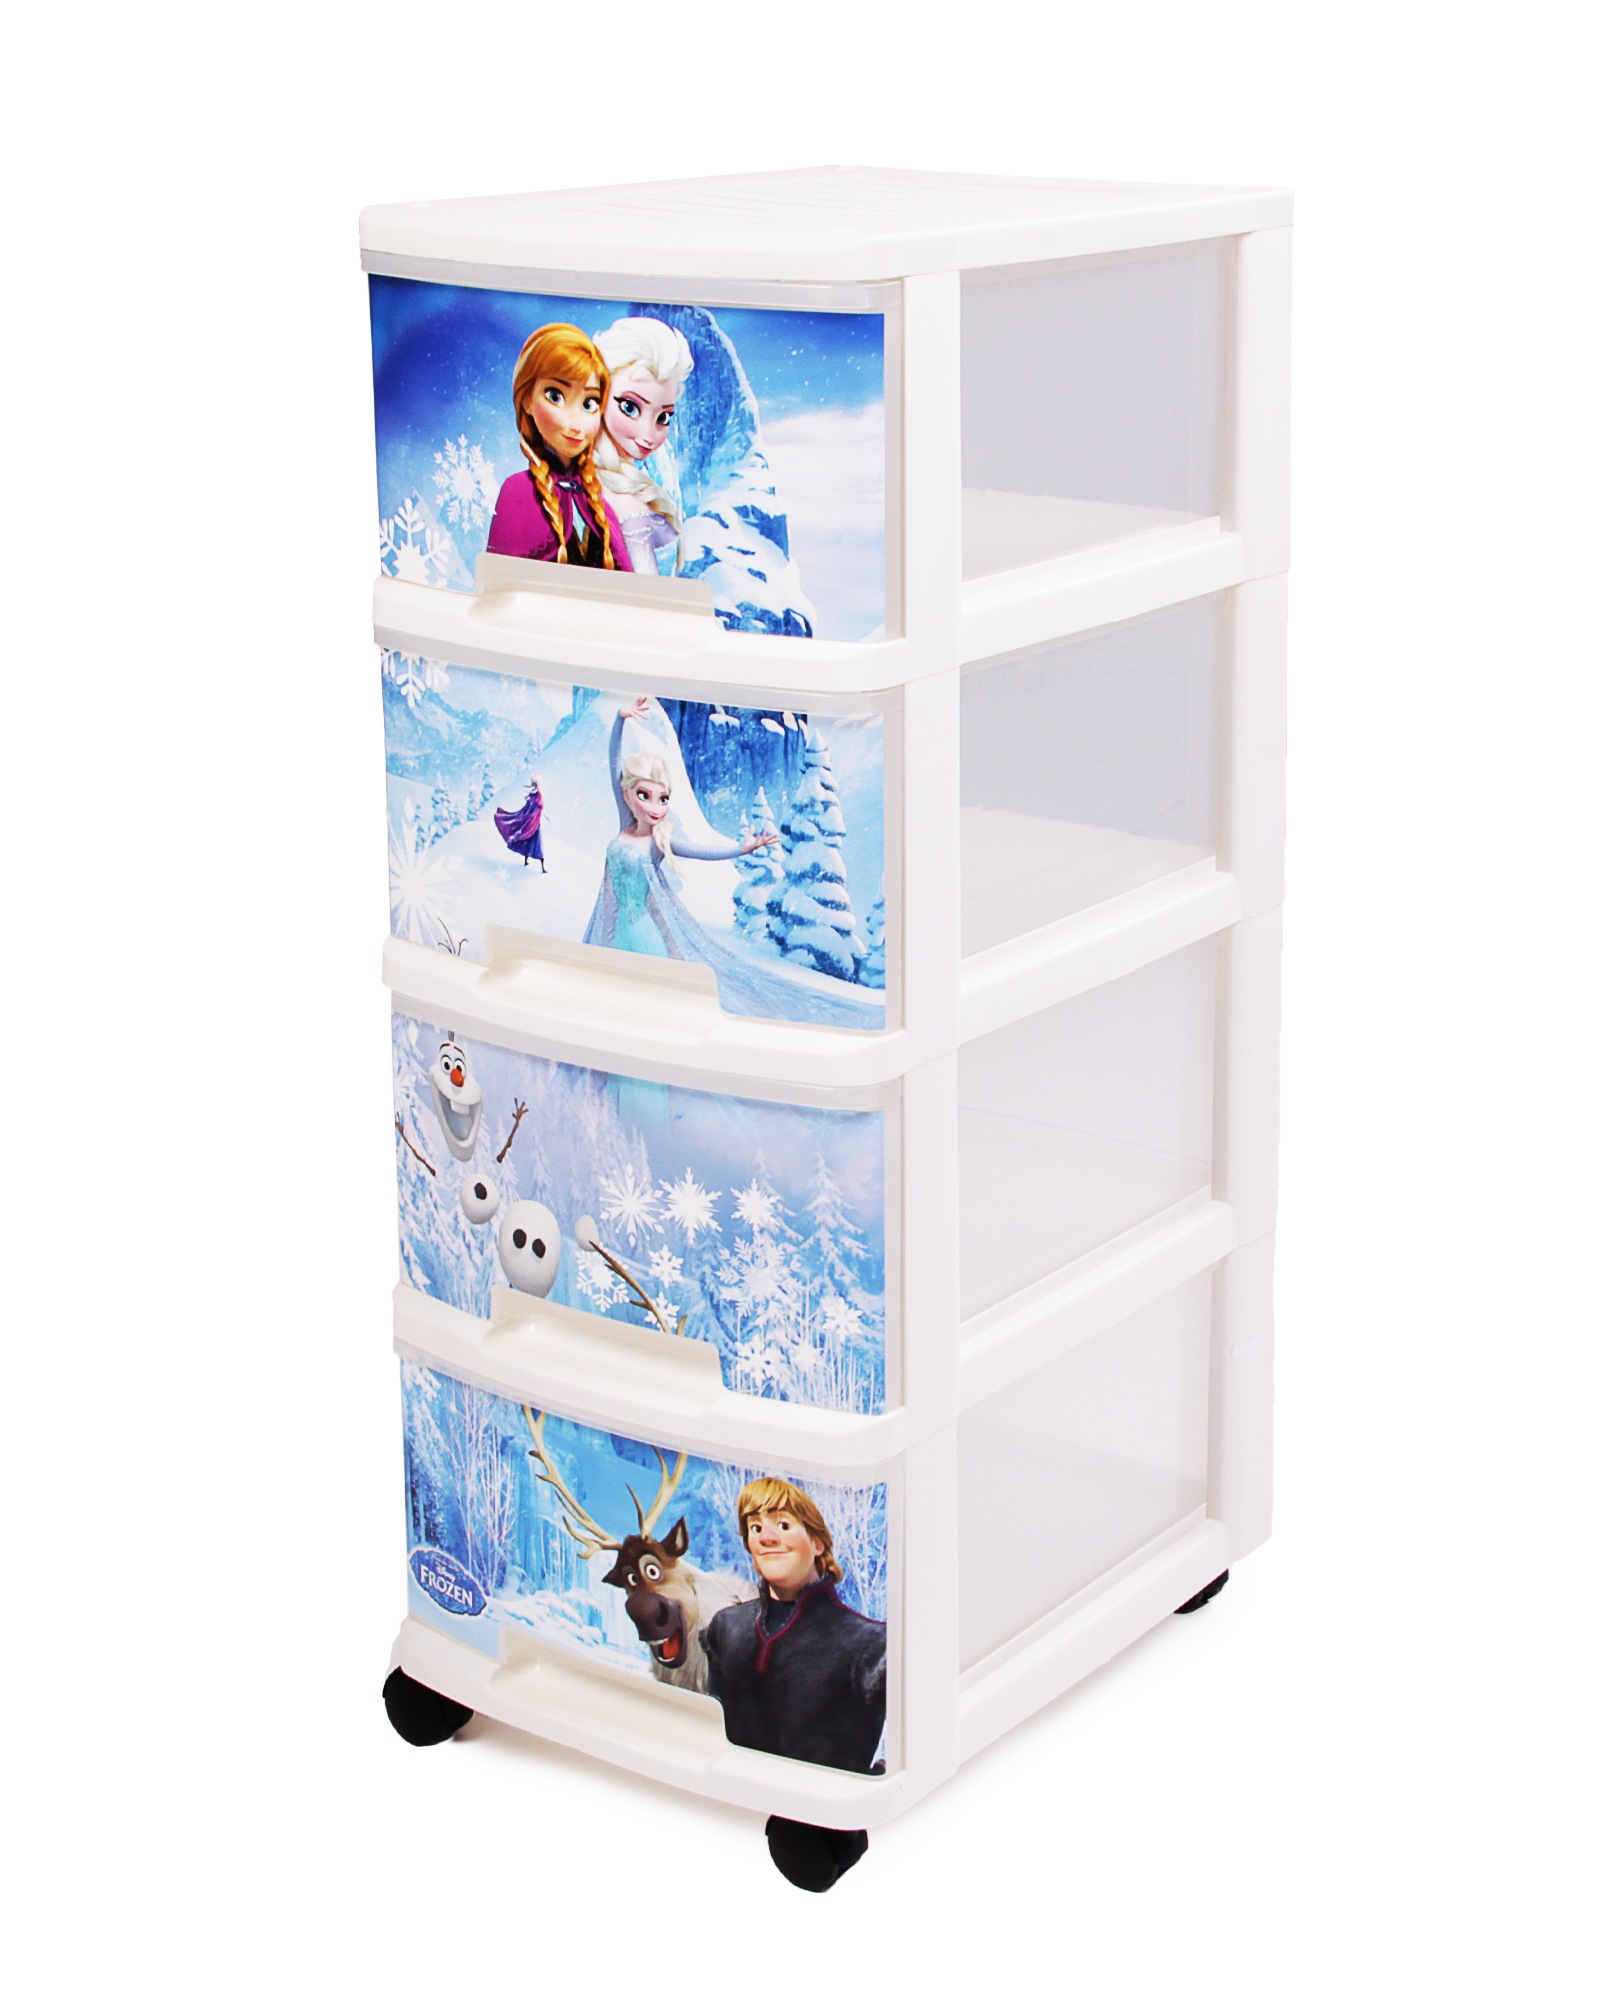 ondis24 curver schubladenturm disney frozen mit rollen g nstig online kaufen. Black Bedroom Furniture Sets. Home Design Ideas